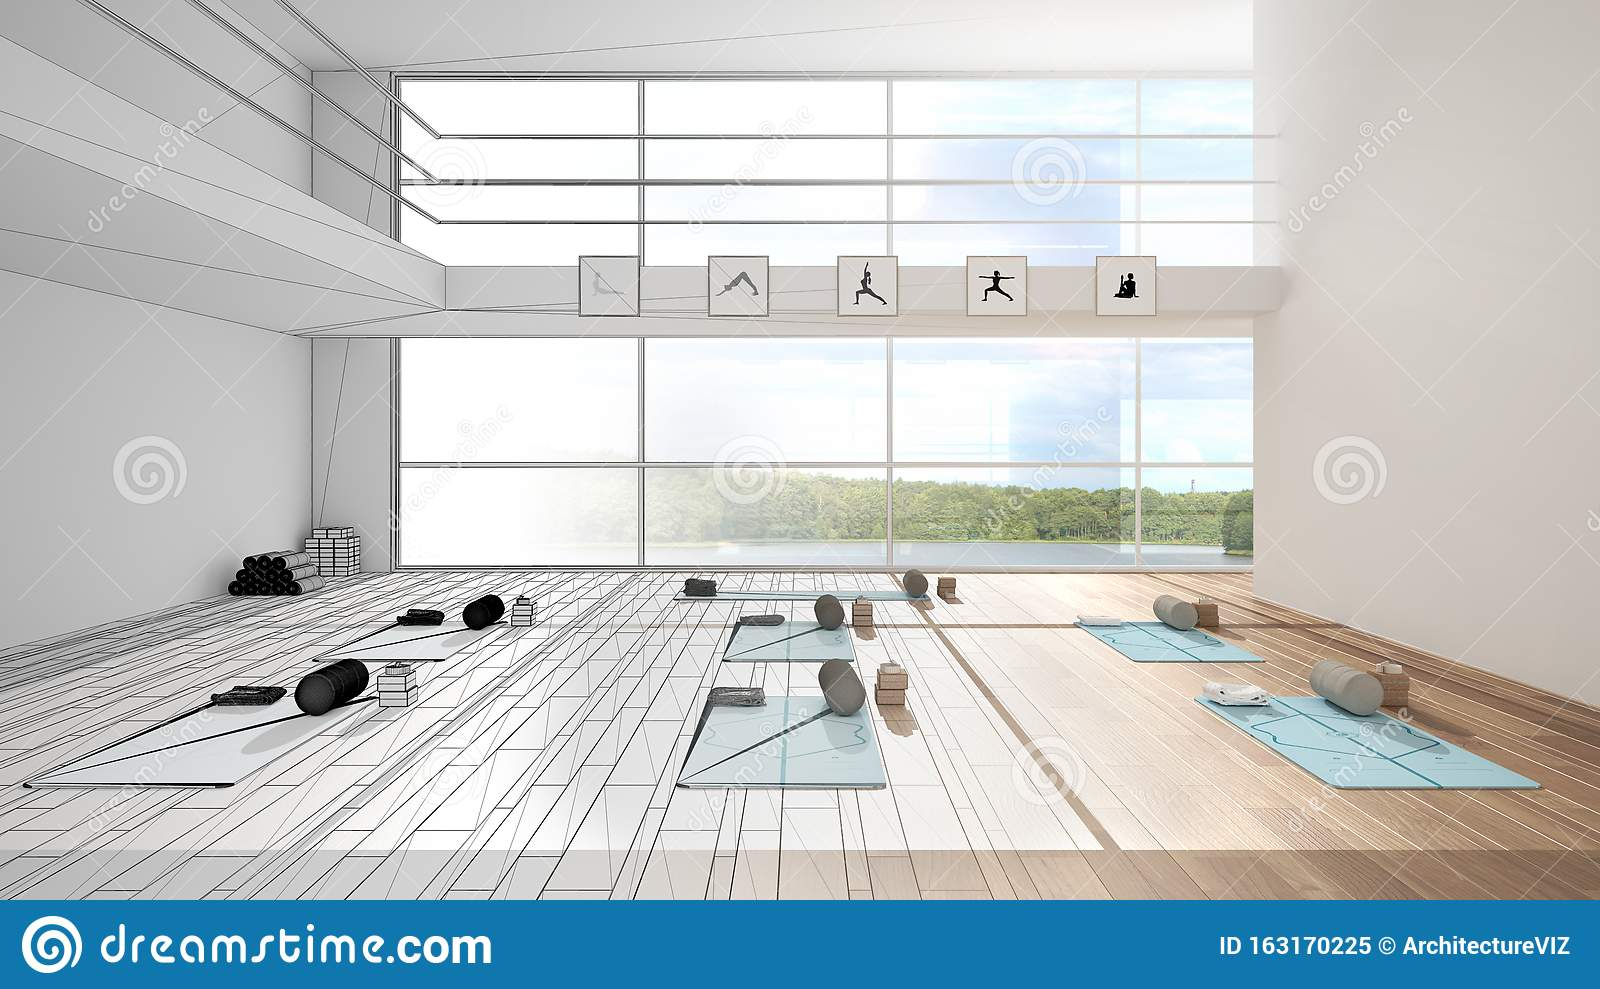 Architect Interior Designer Concept Unfinished Project That Becomes Real Empty Yoga Studio Design Spatial Organization With Stock Image Image Of Housing Activity 163170225